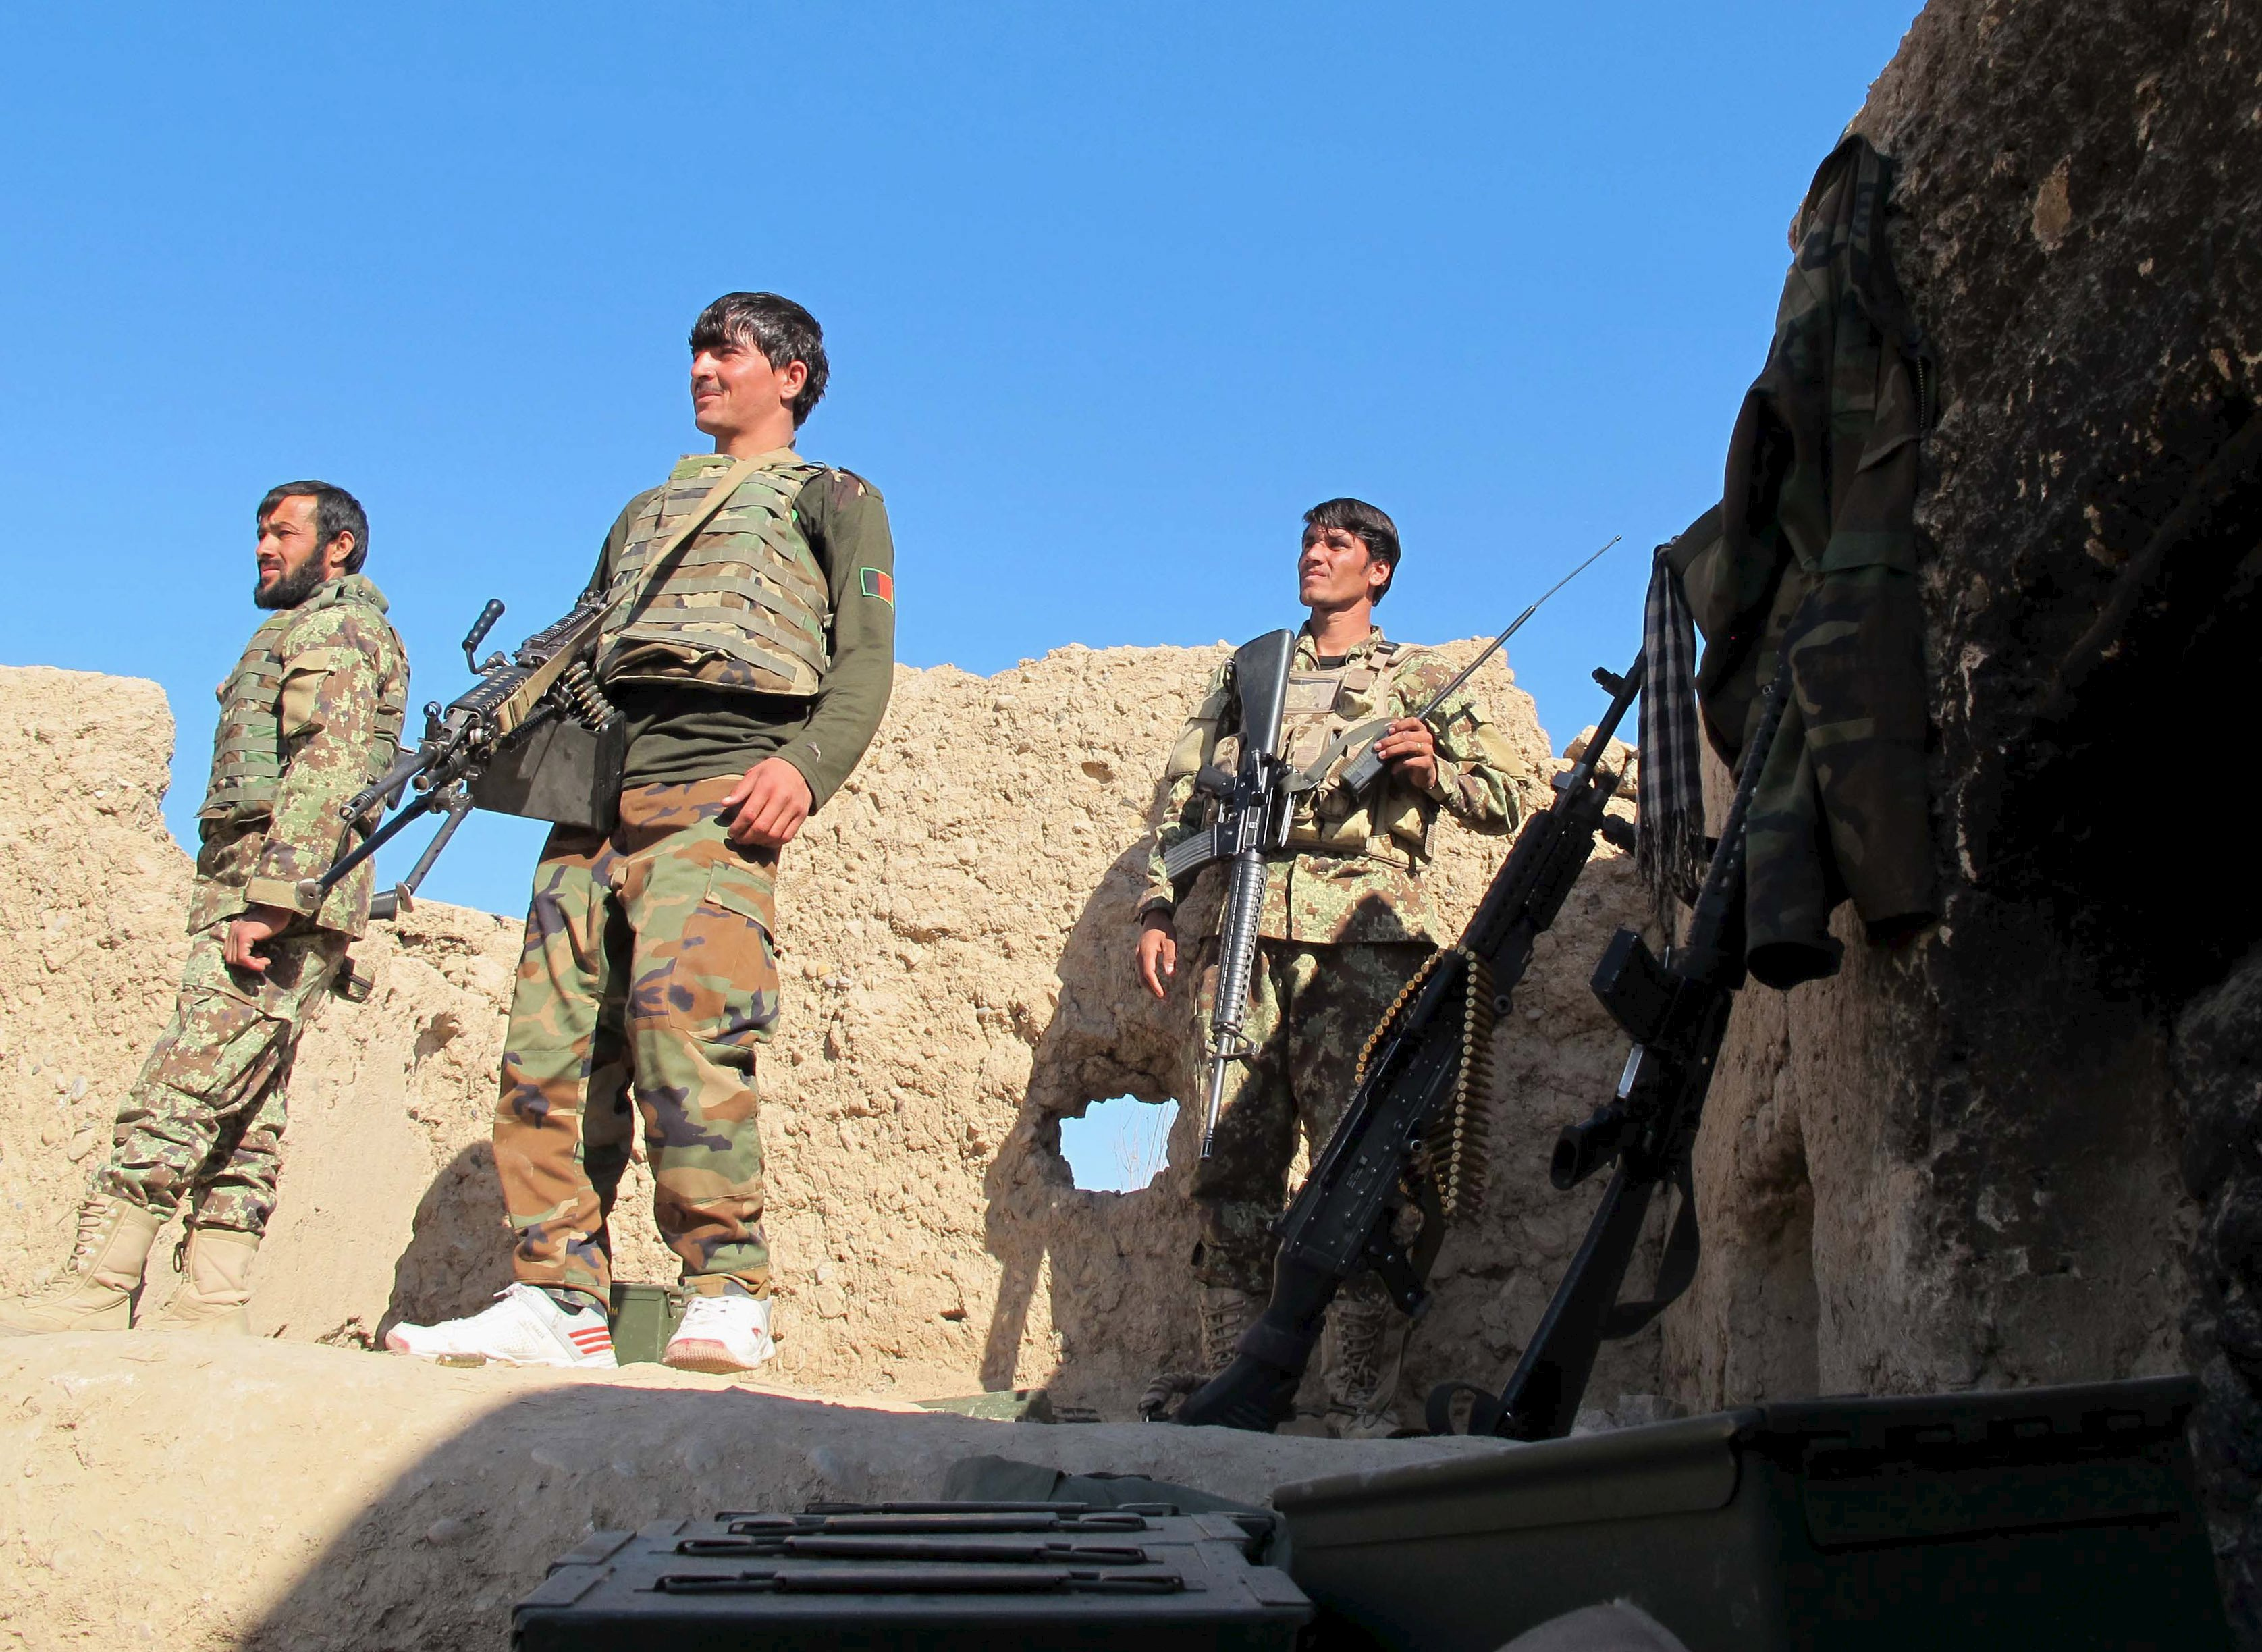 Afghan National Army (ANA) soldiers stand at an outpost in Helmand province, December 20, 2015. Photo: Reuters